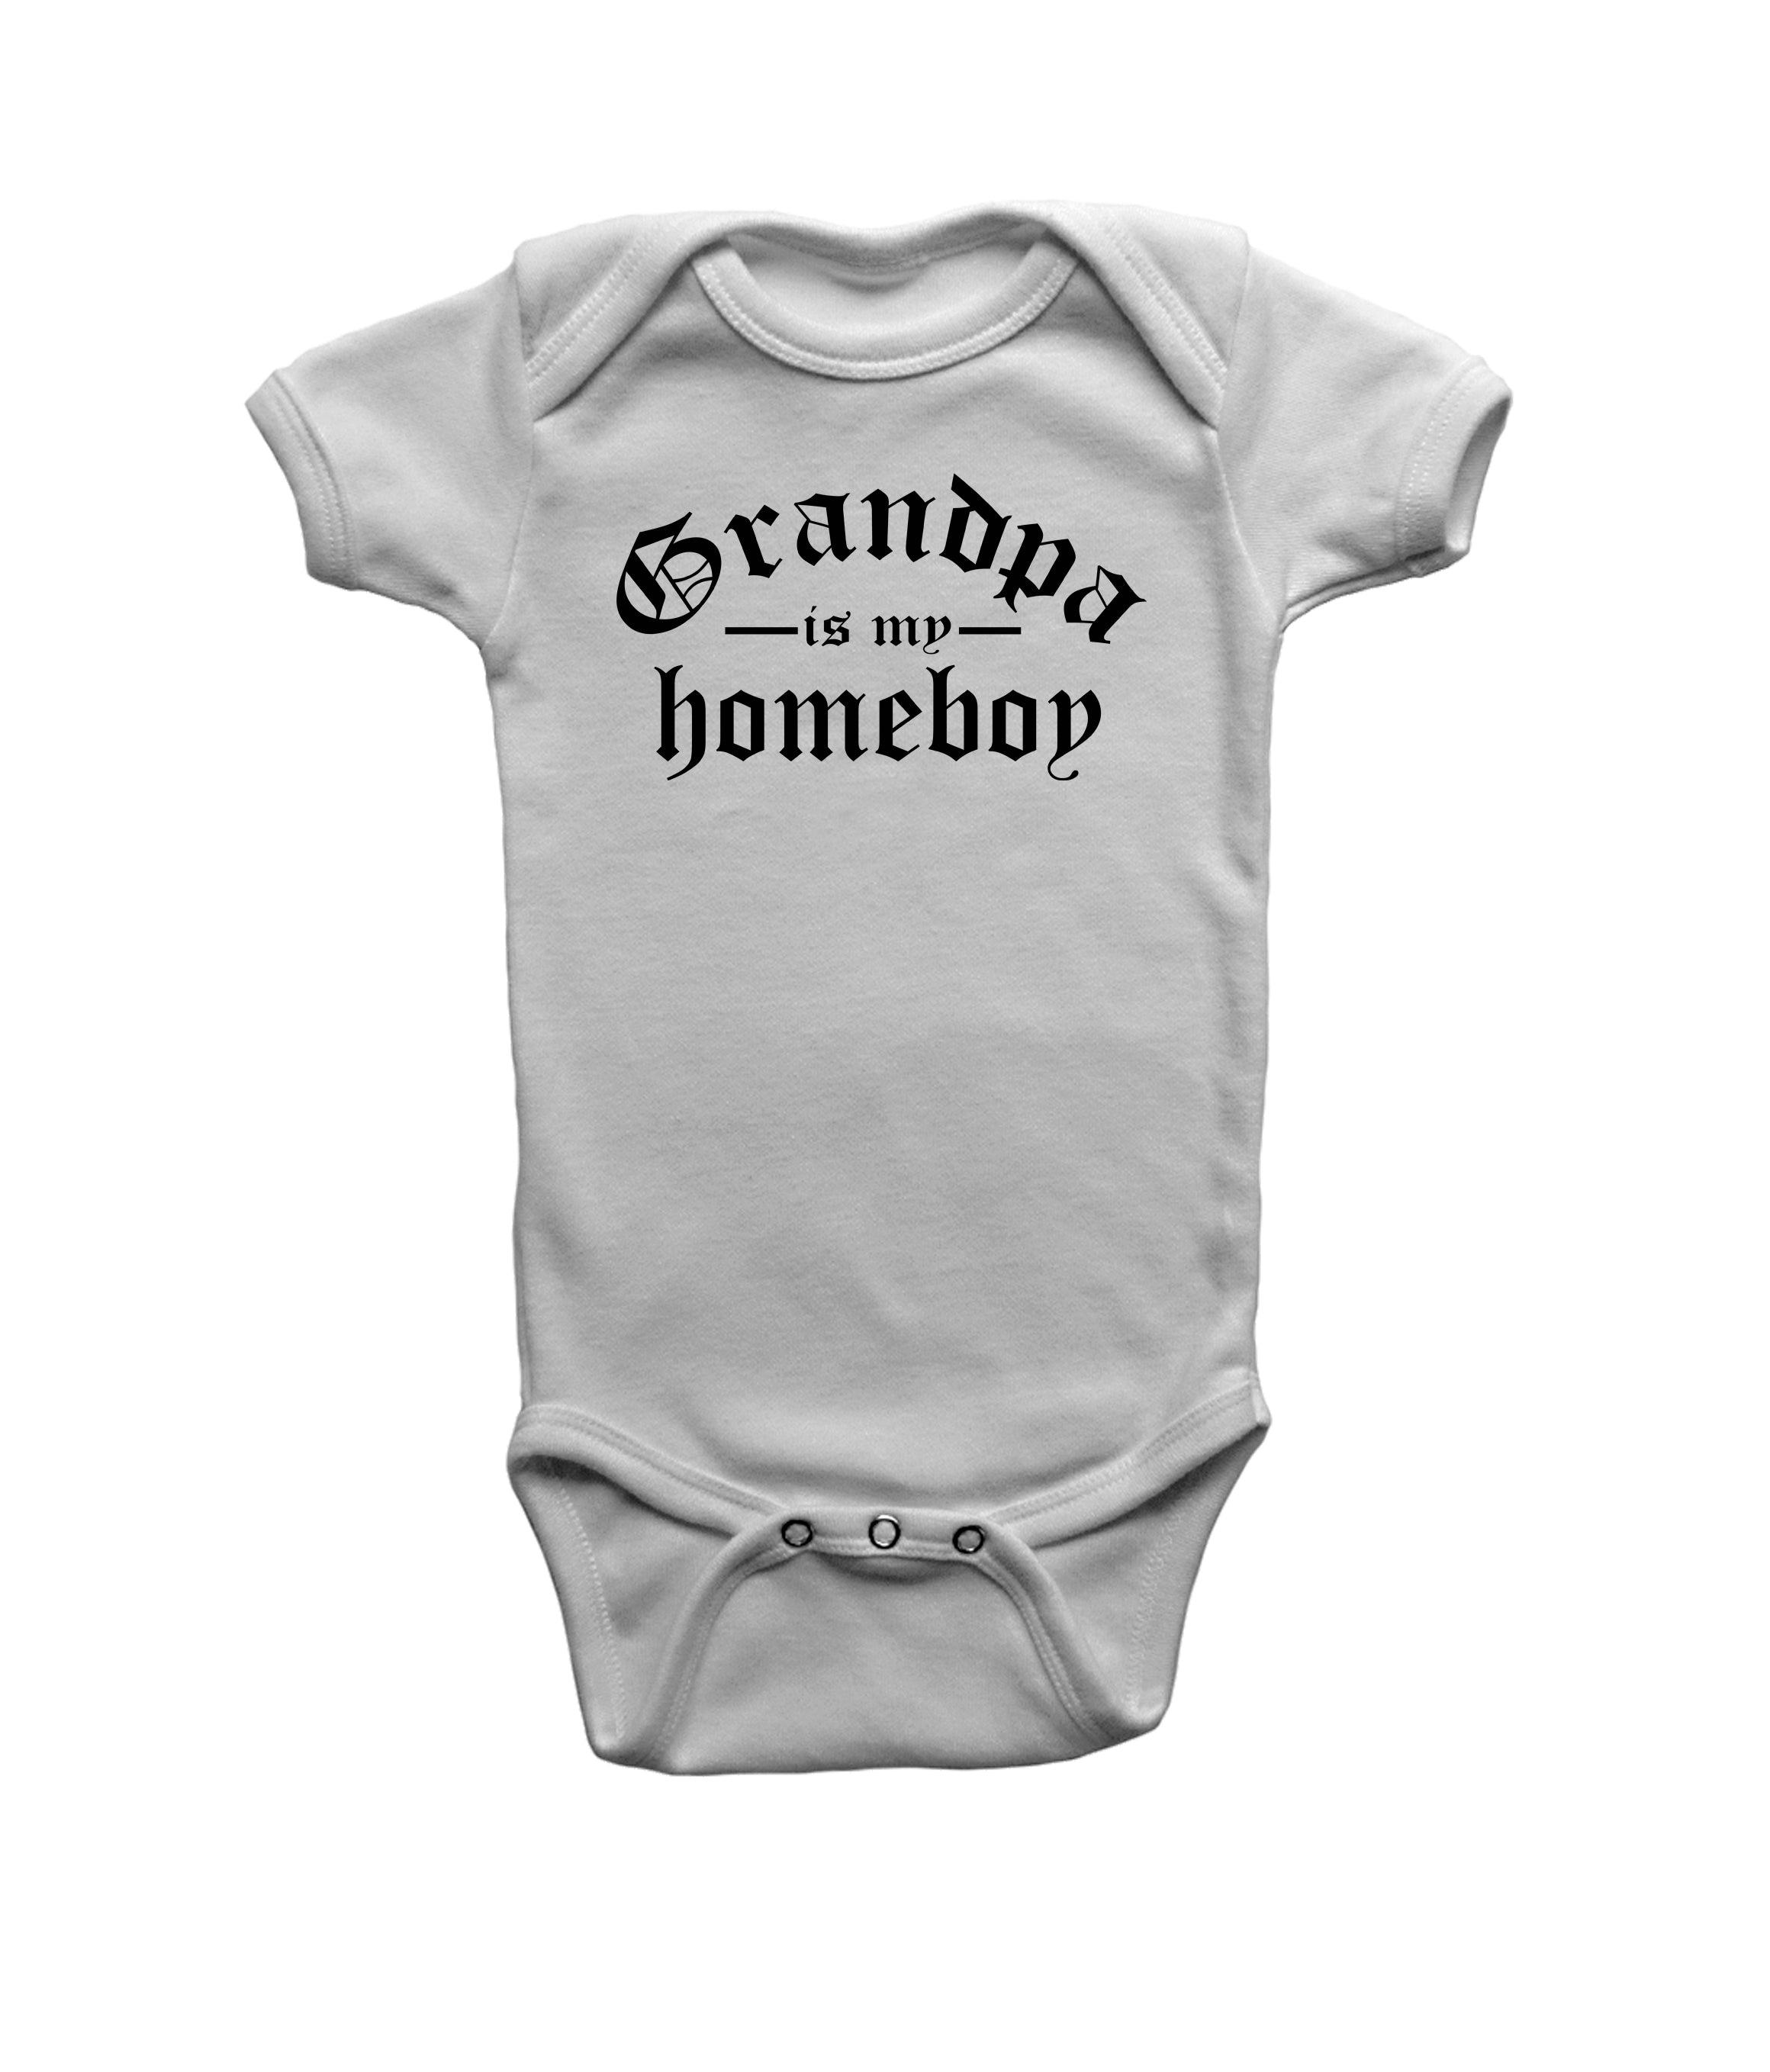 Grandpa is my Homeboy onesie